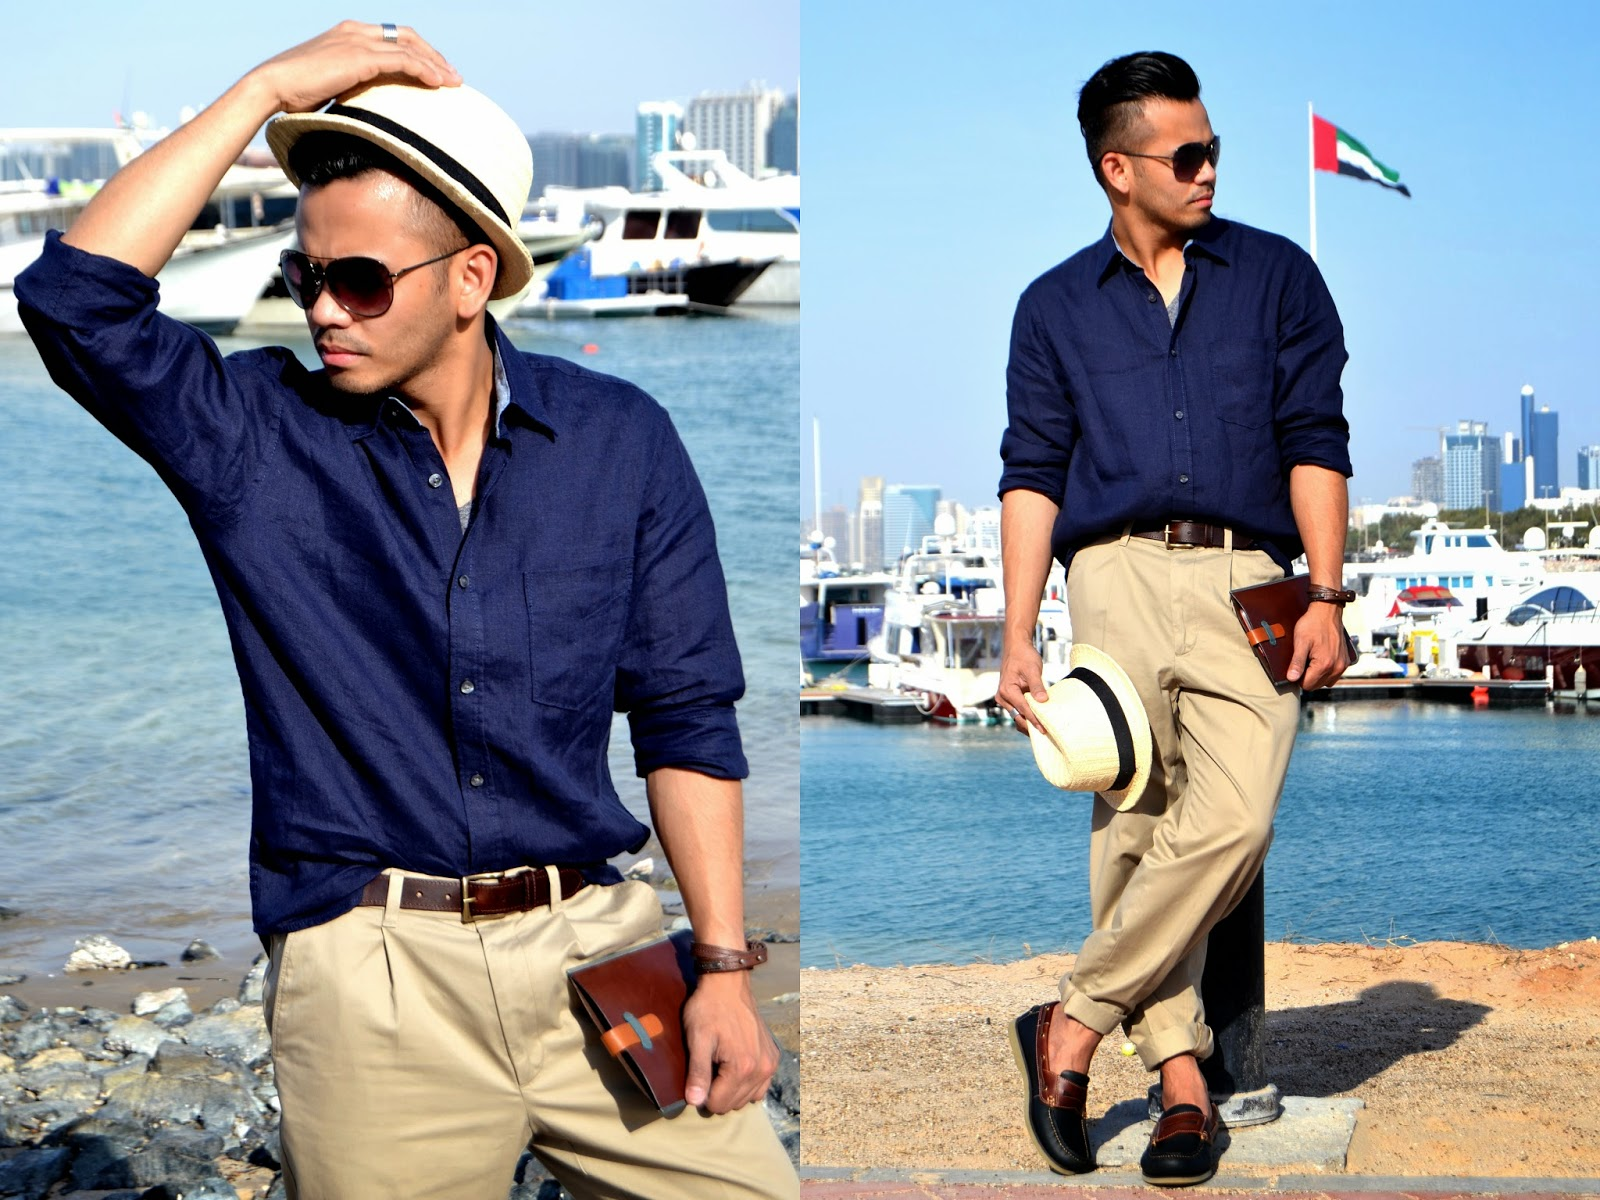 http://thestylechoreo.blogspot.ae/2014/03/lets-go-to-beach.html